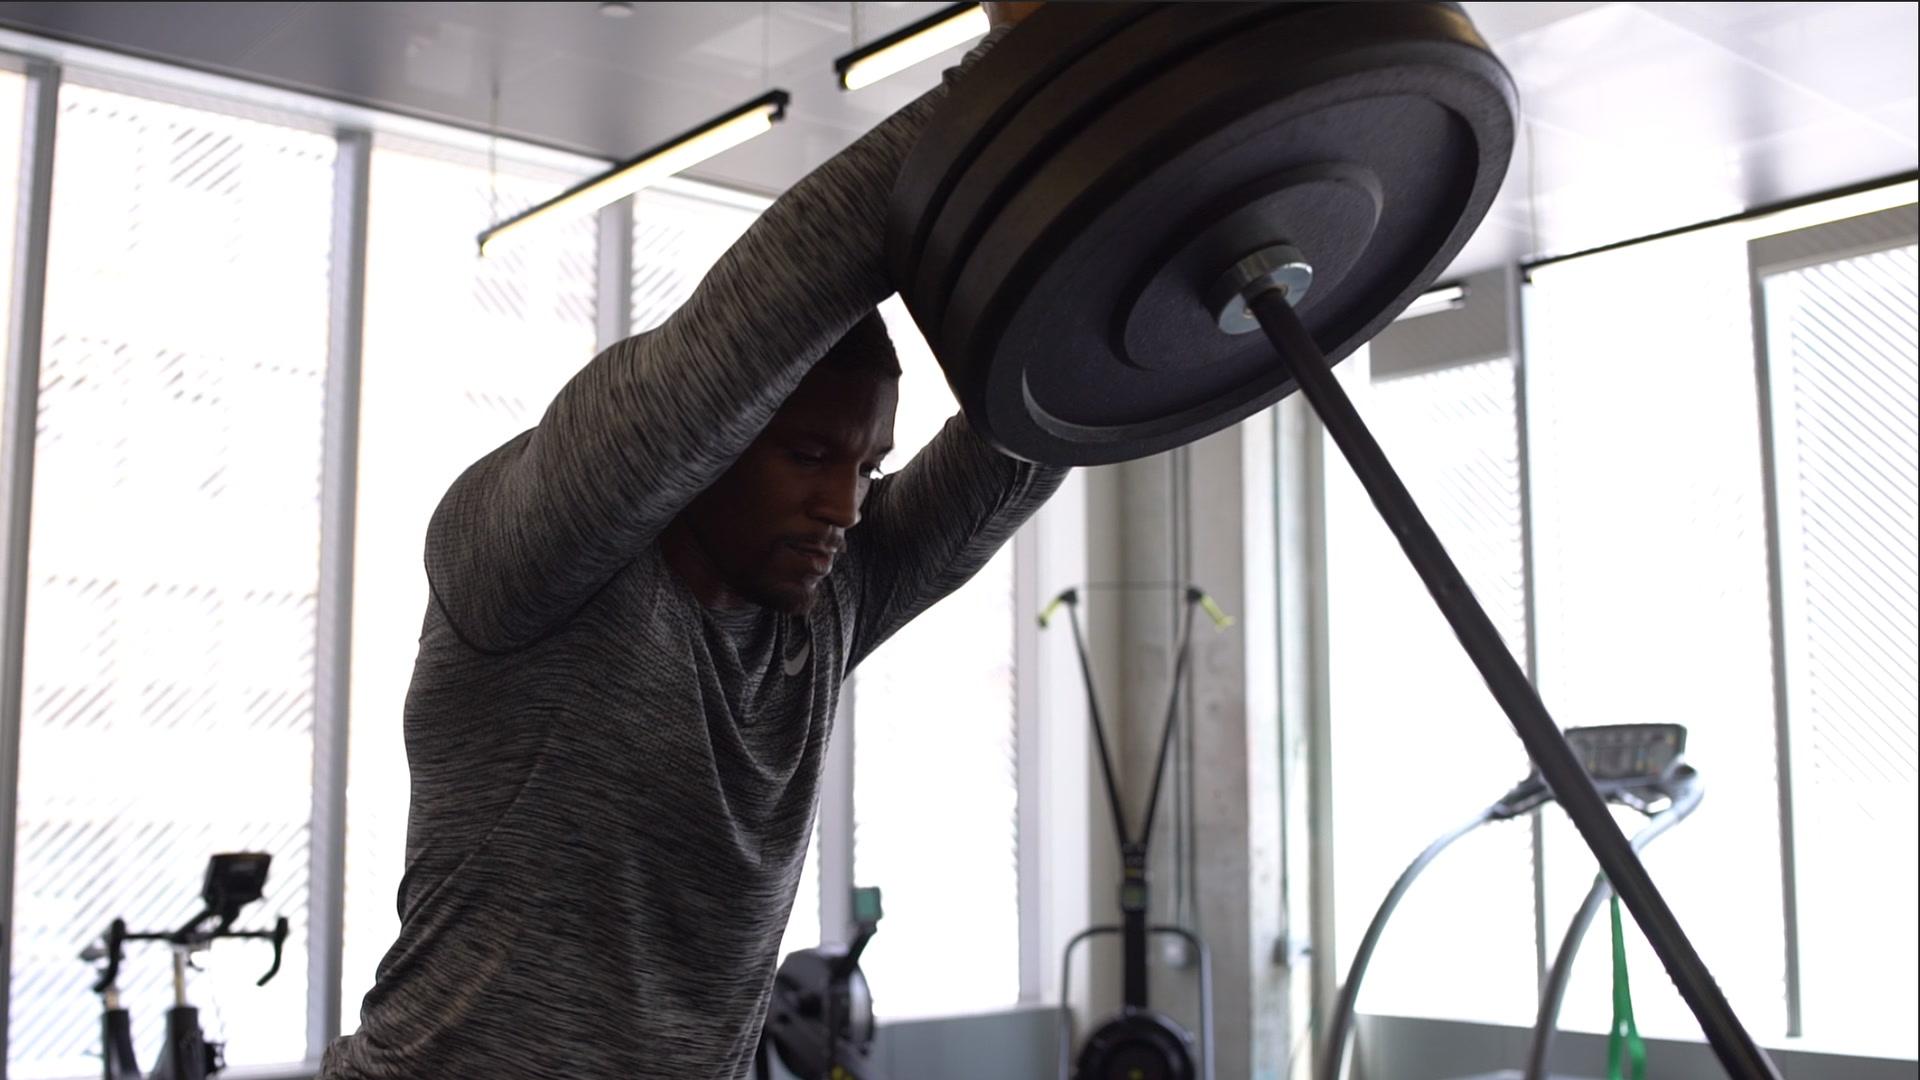 The NFL Running Back Workout with David Johnson